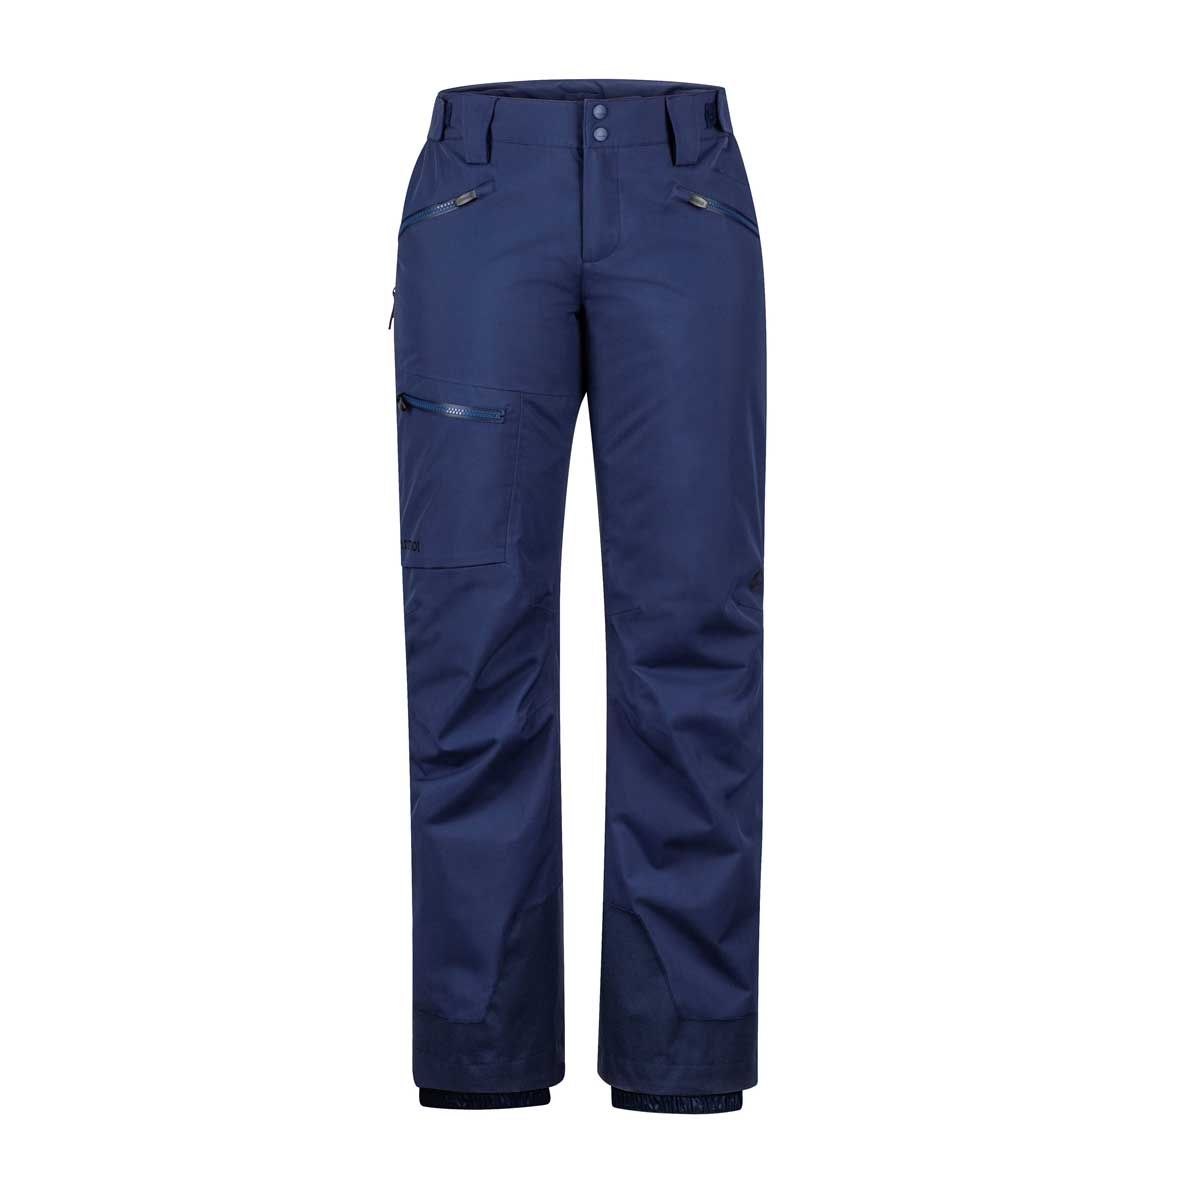 Marmot Women's Refuge Pant in Arctic Navy